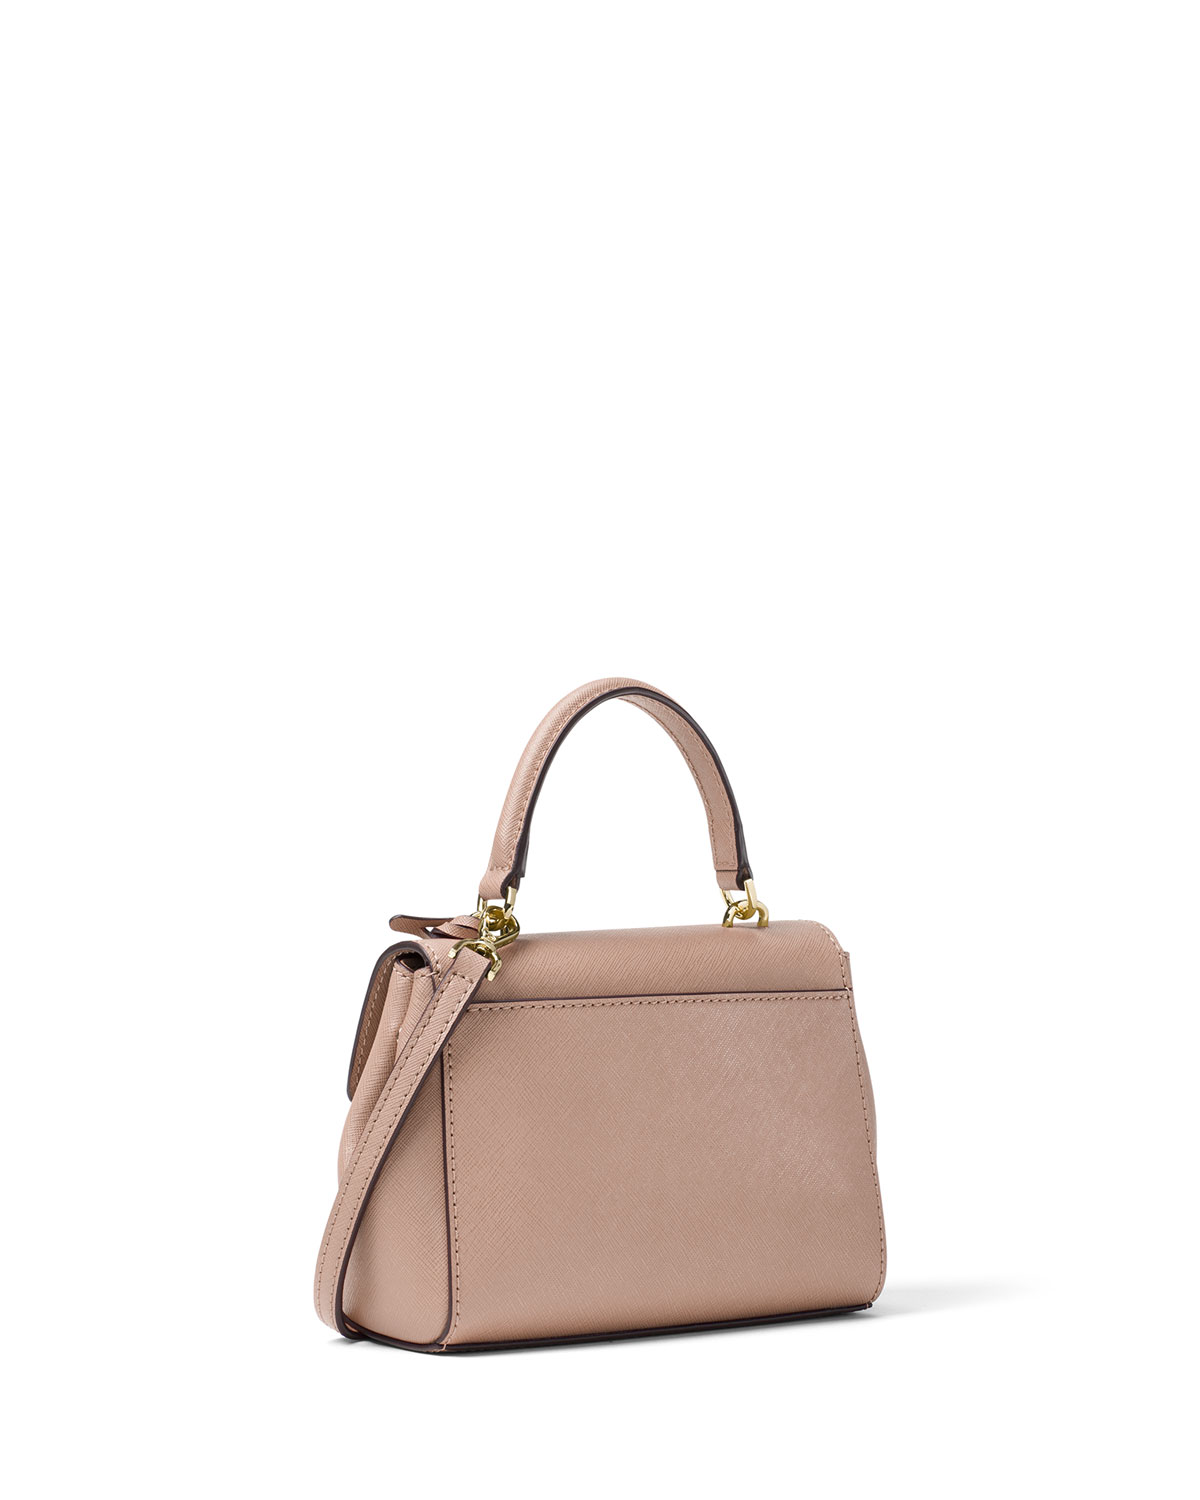 b09e6ea52f49 MICHAEL Michael Kors Ava Extra-Small Saffiano Leather Satchel Bag | Neiman  Marcus